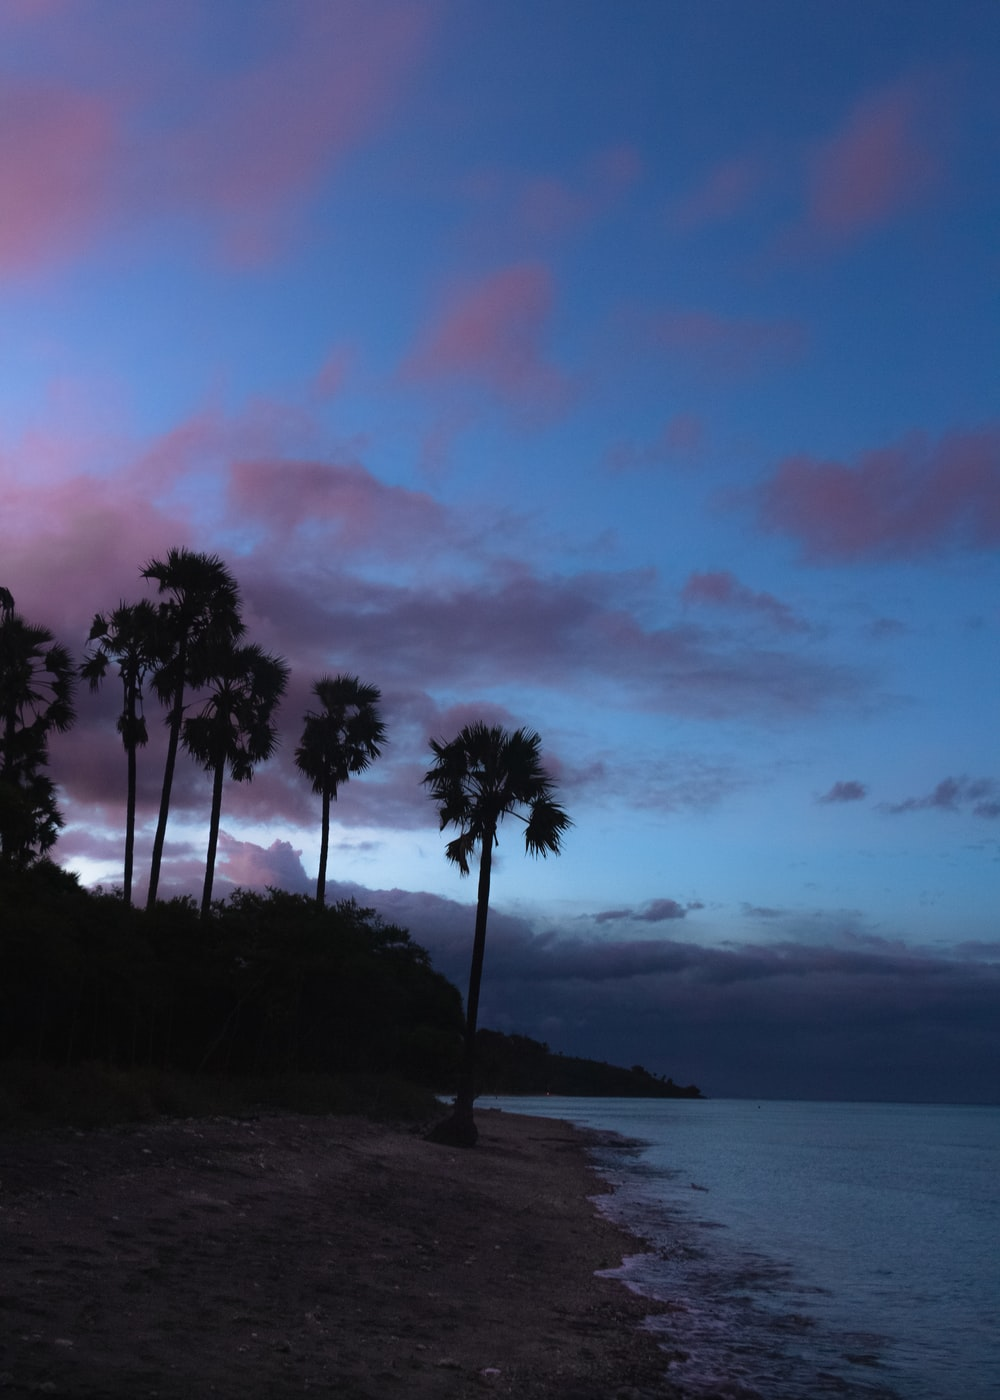 palm trees near body of water during sunset